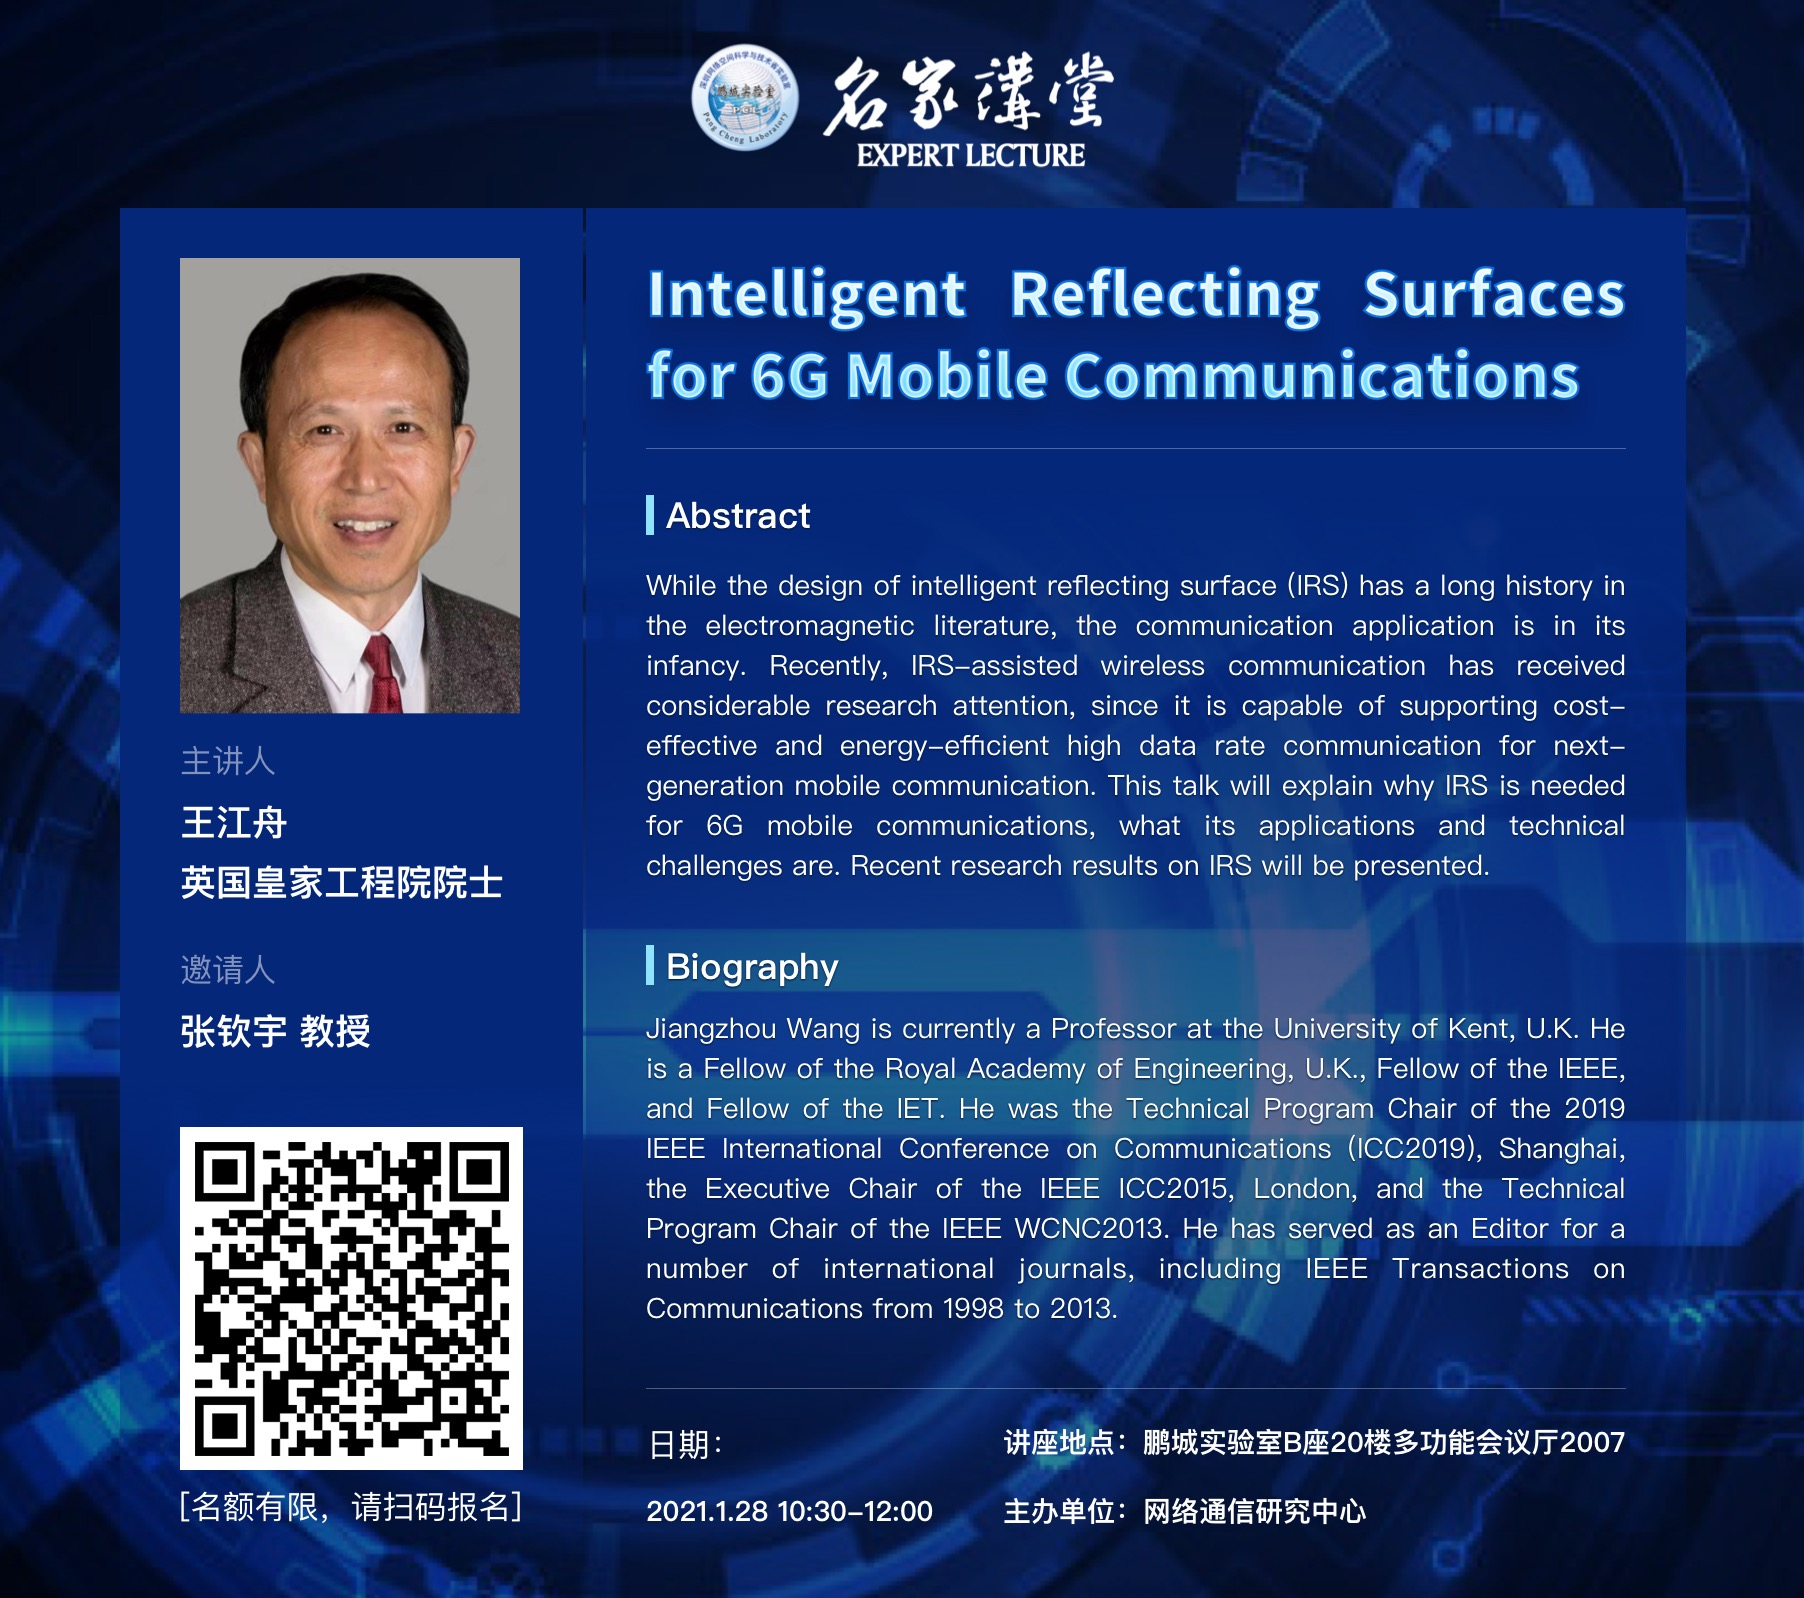 【名家讲堂】 Intelligent Reflecting Surfaces for 6G Mobile Communications